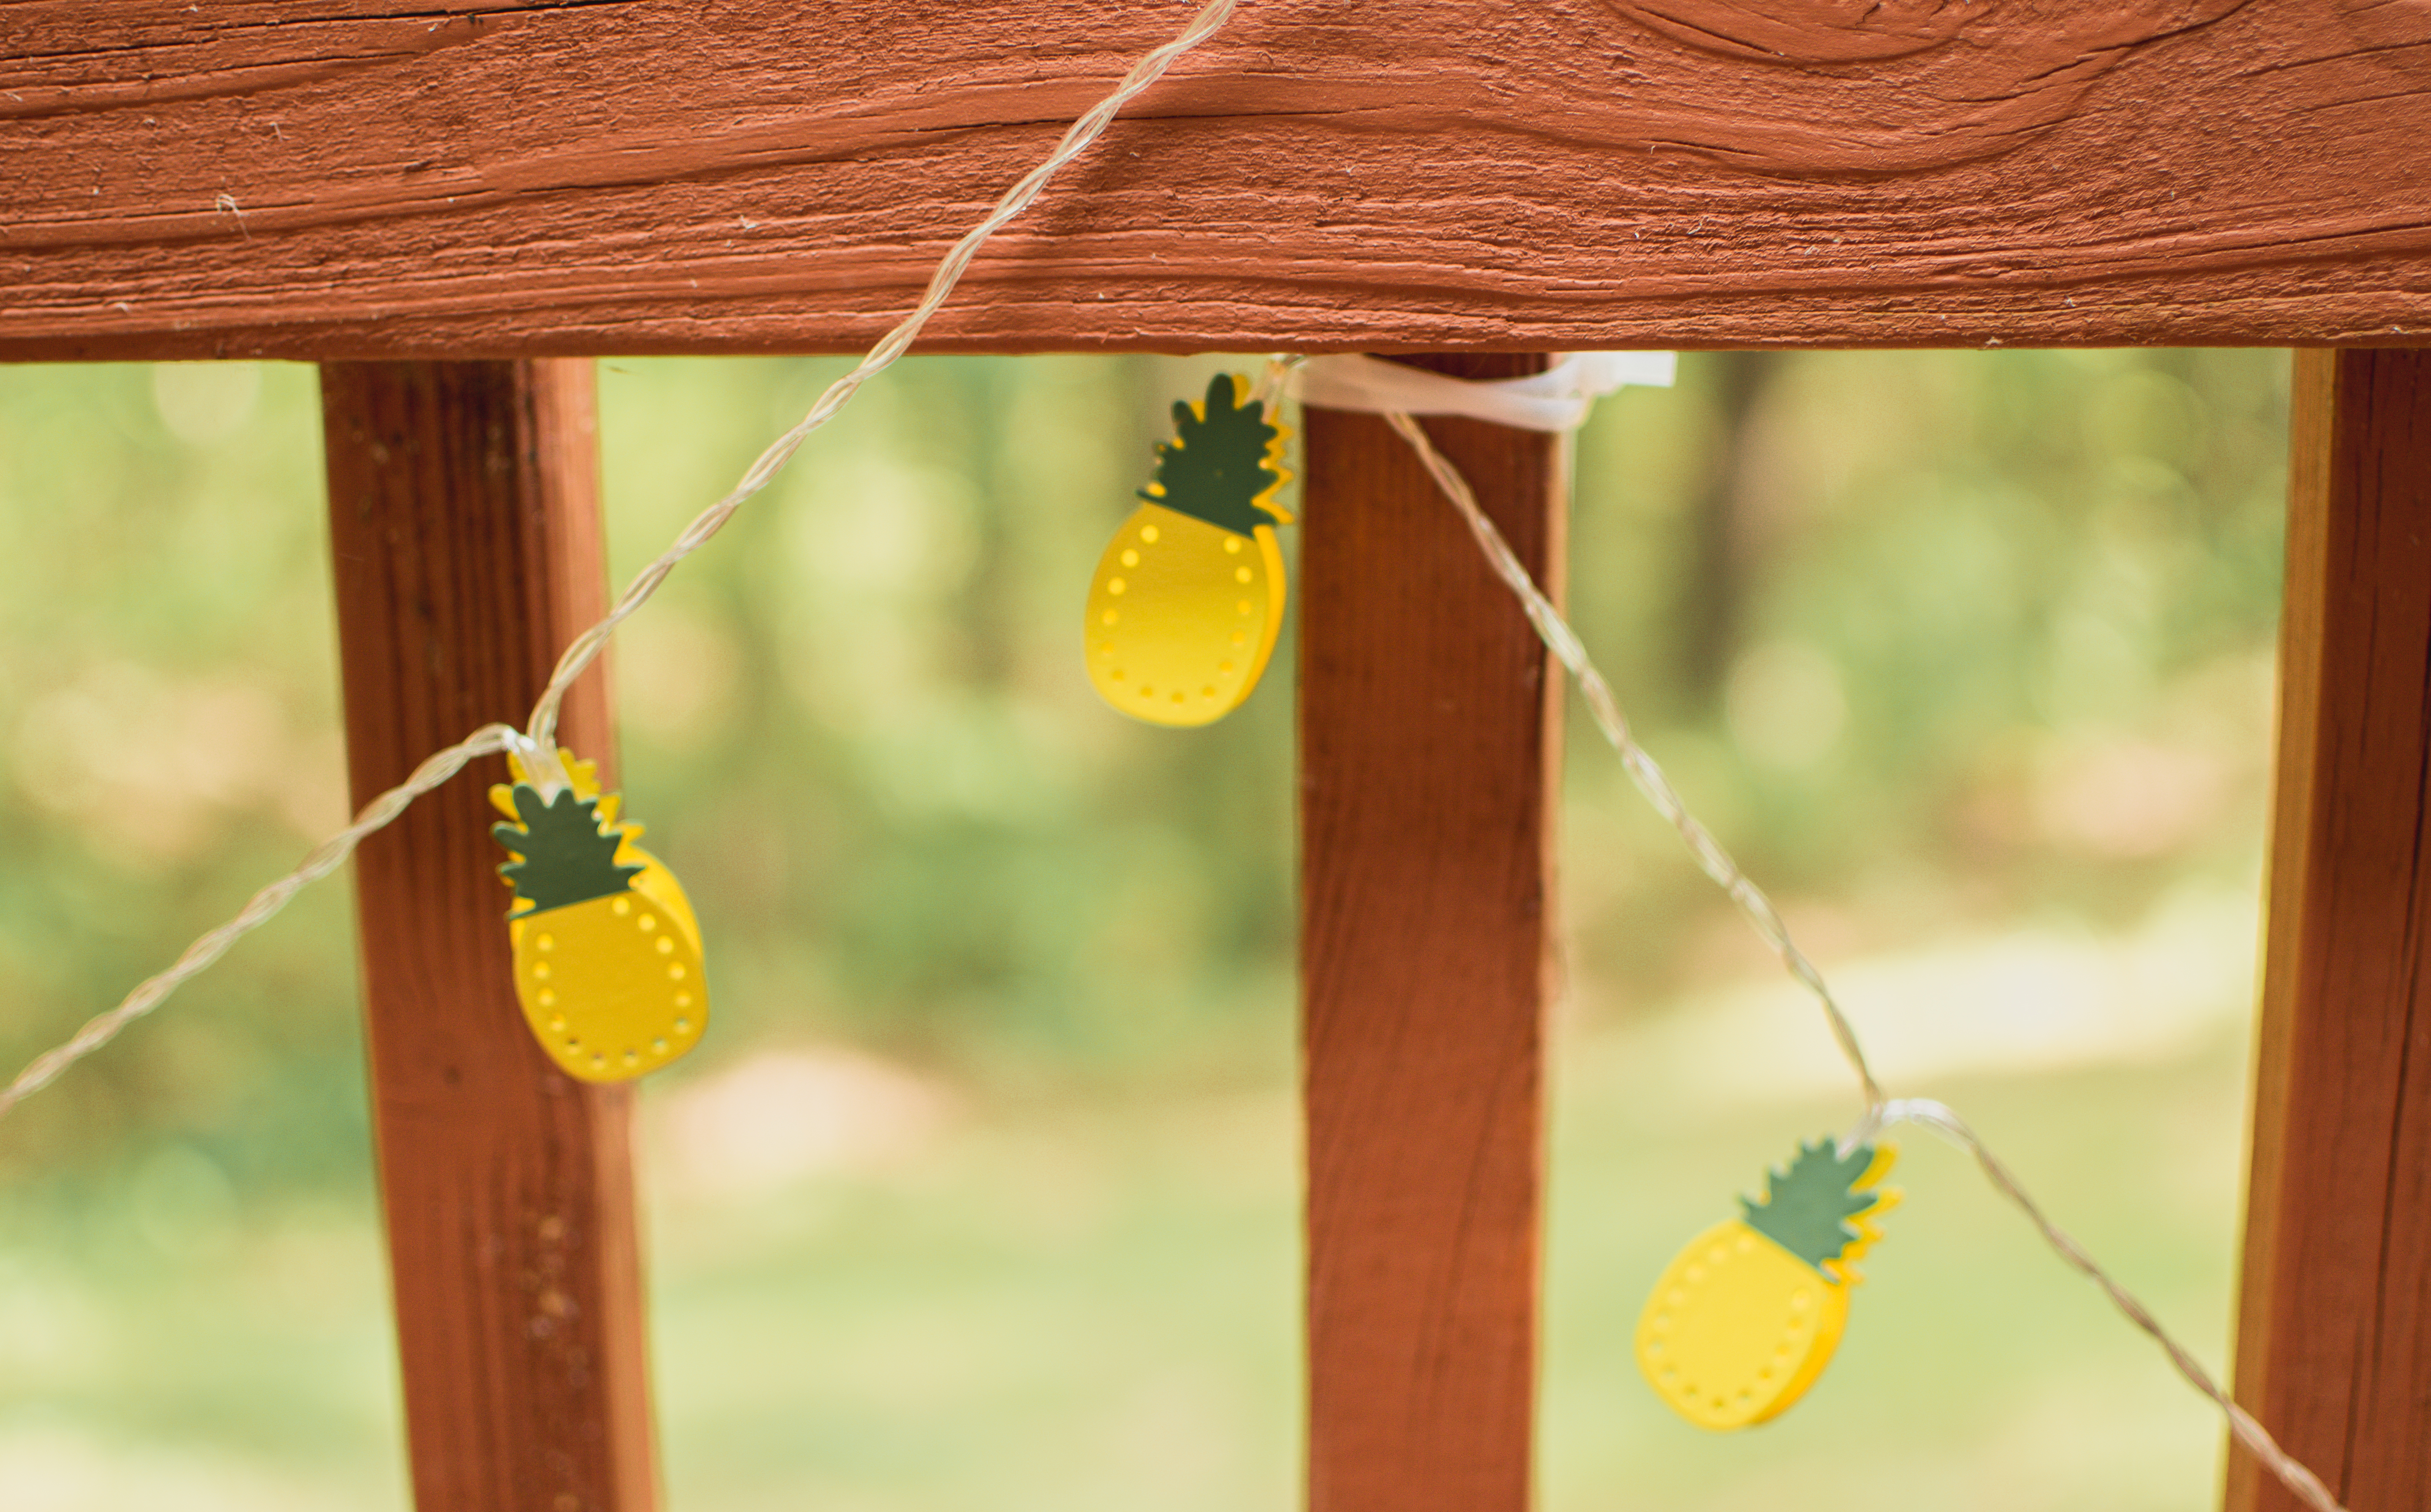 How-to Host a Backyard Crawfish Boil on a Budget, Backyard Party Inspiration, Summer Favorites